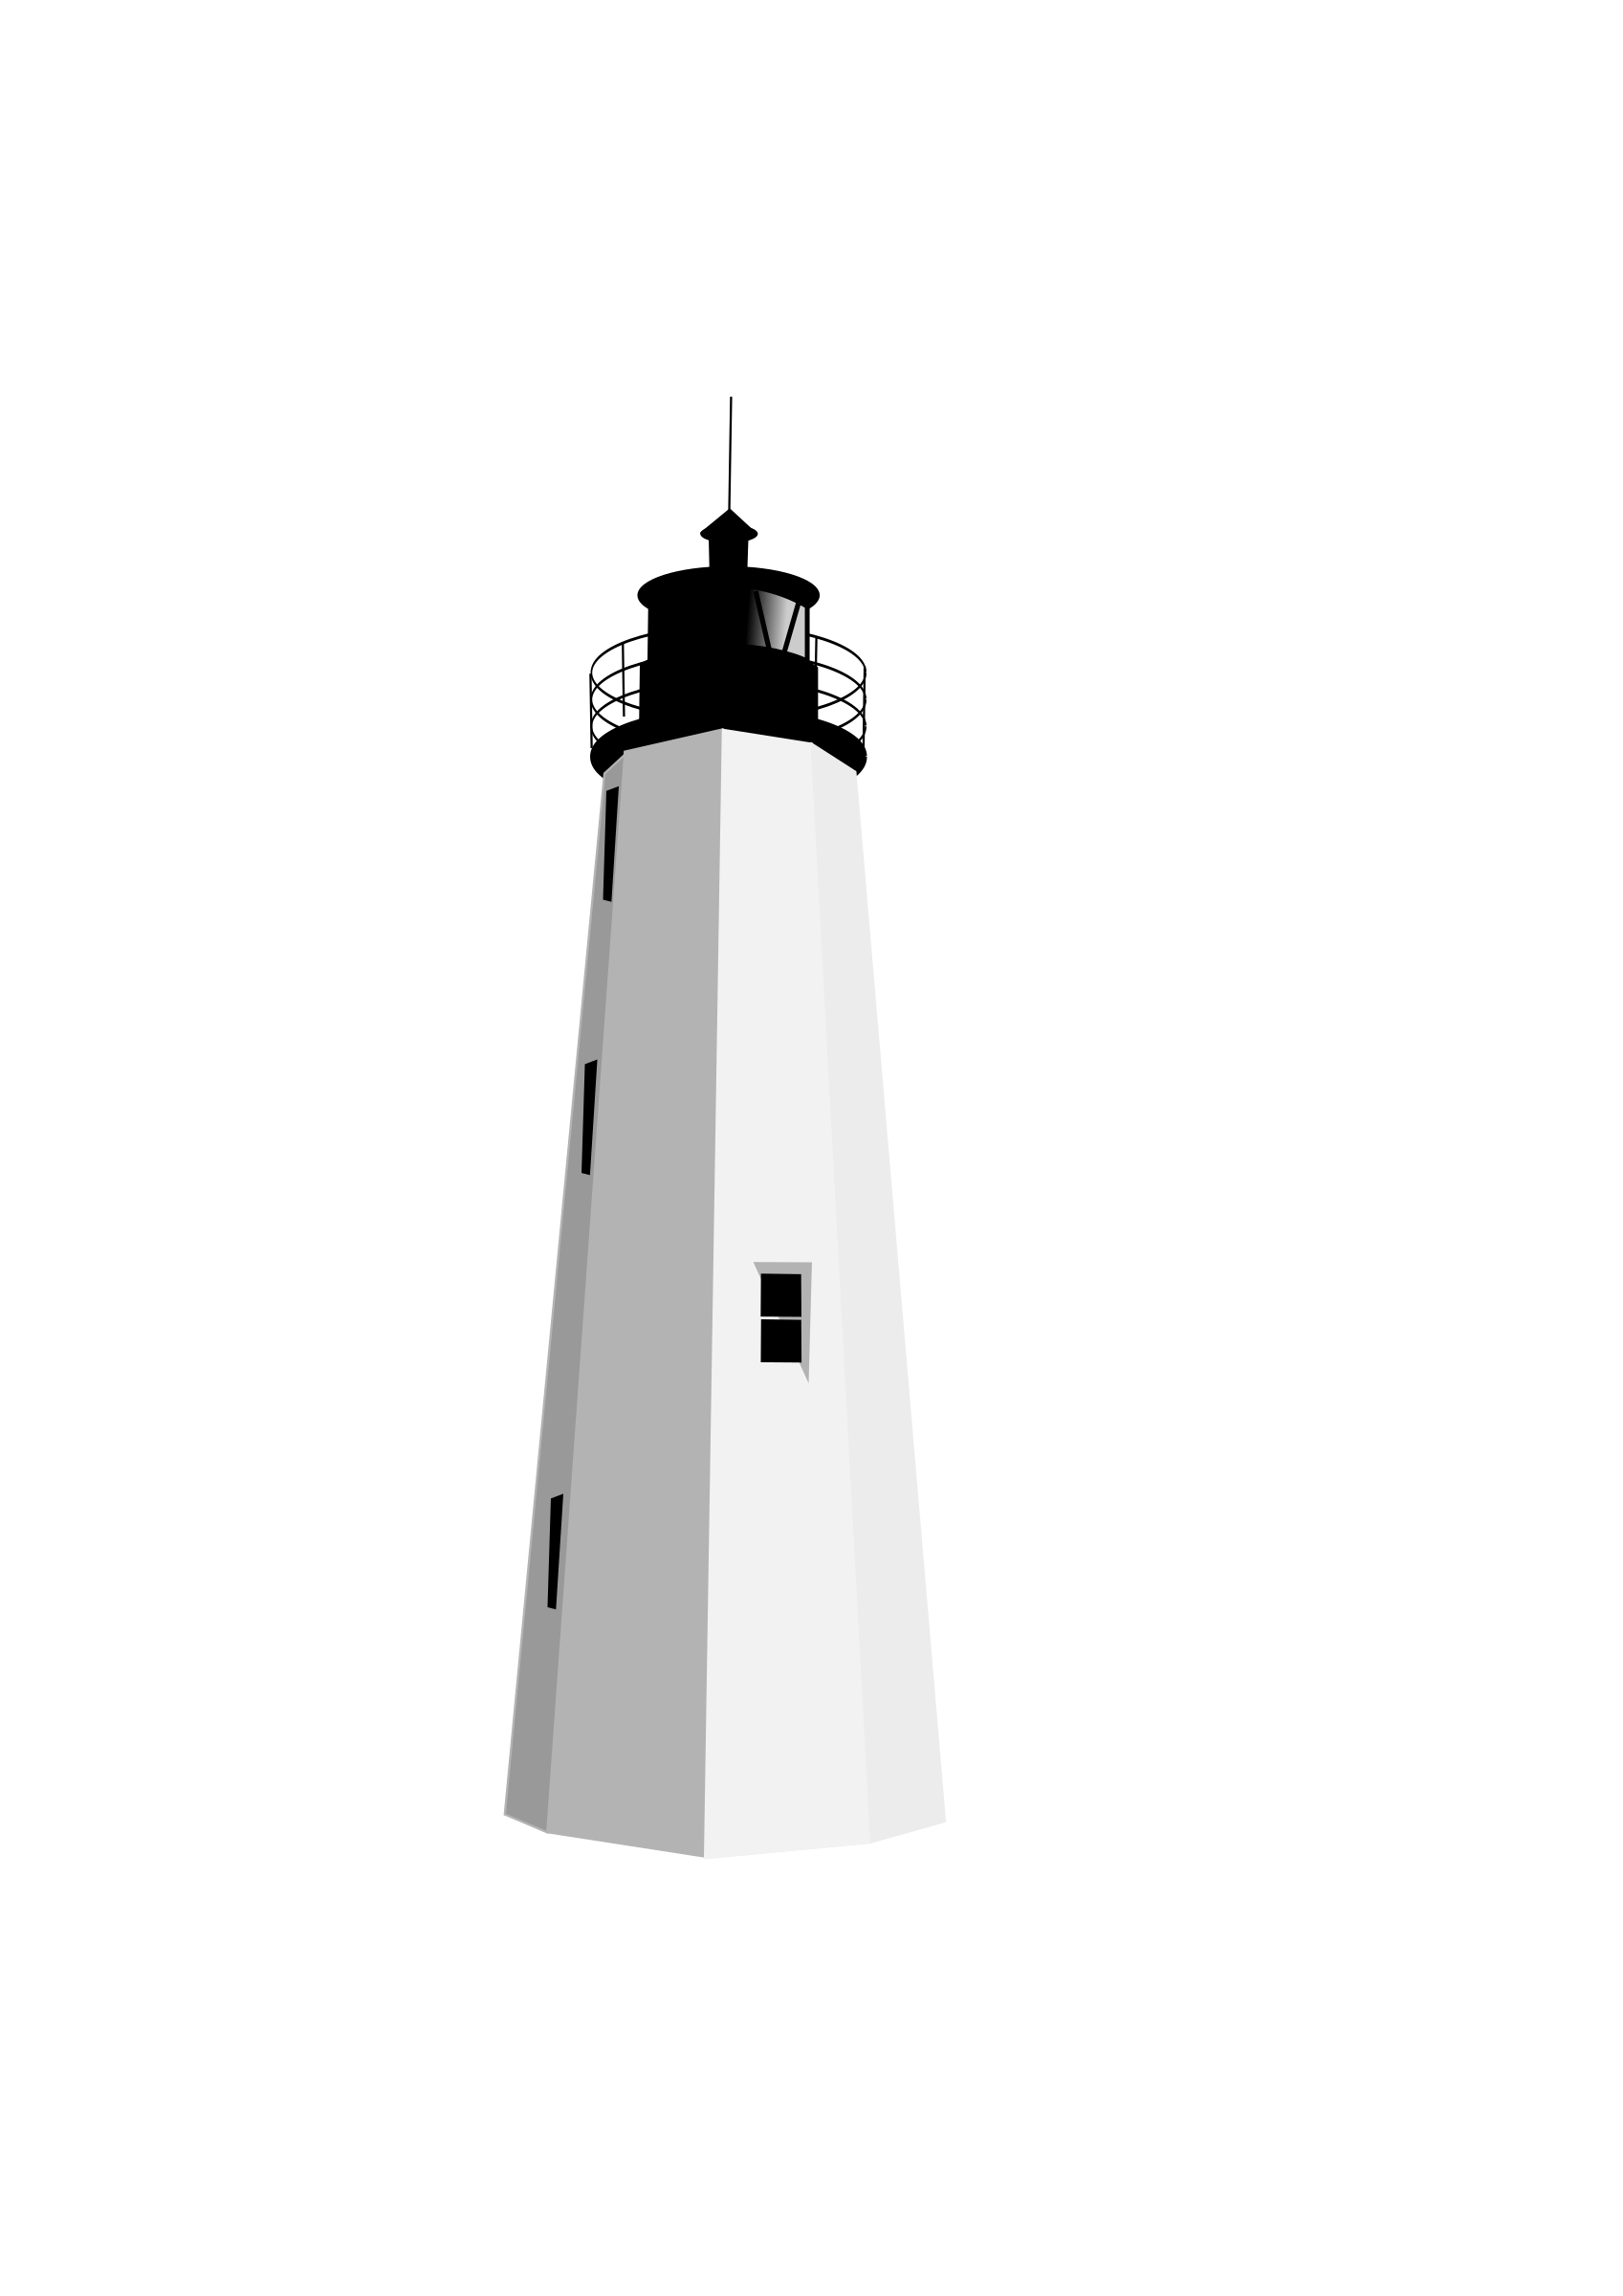 graphic royalty free stock Lighthouse clipart black and white. Transparent png stickpng